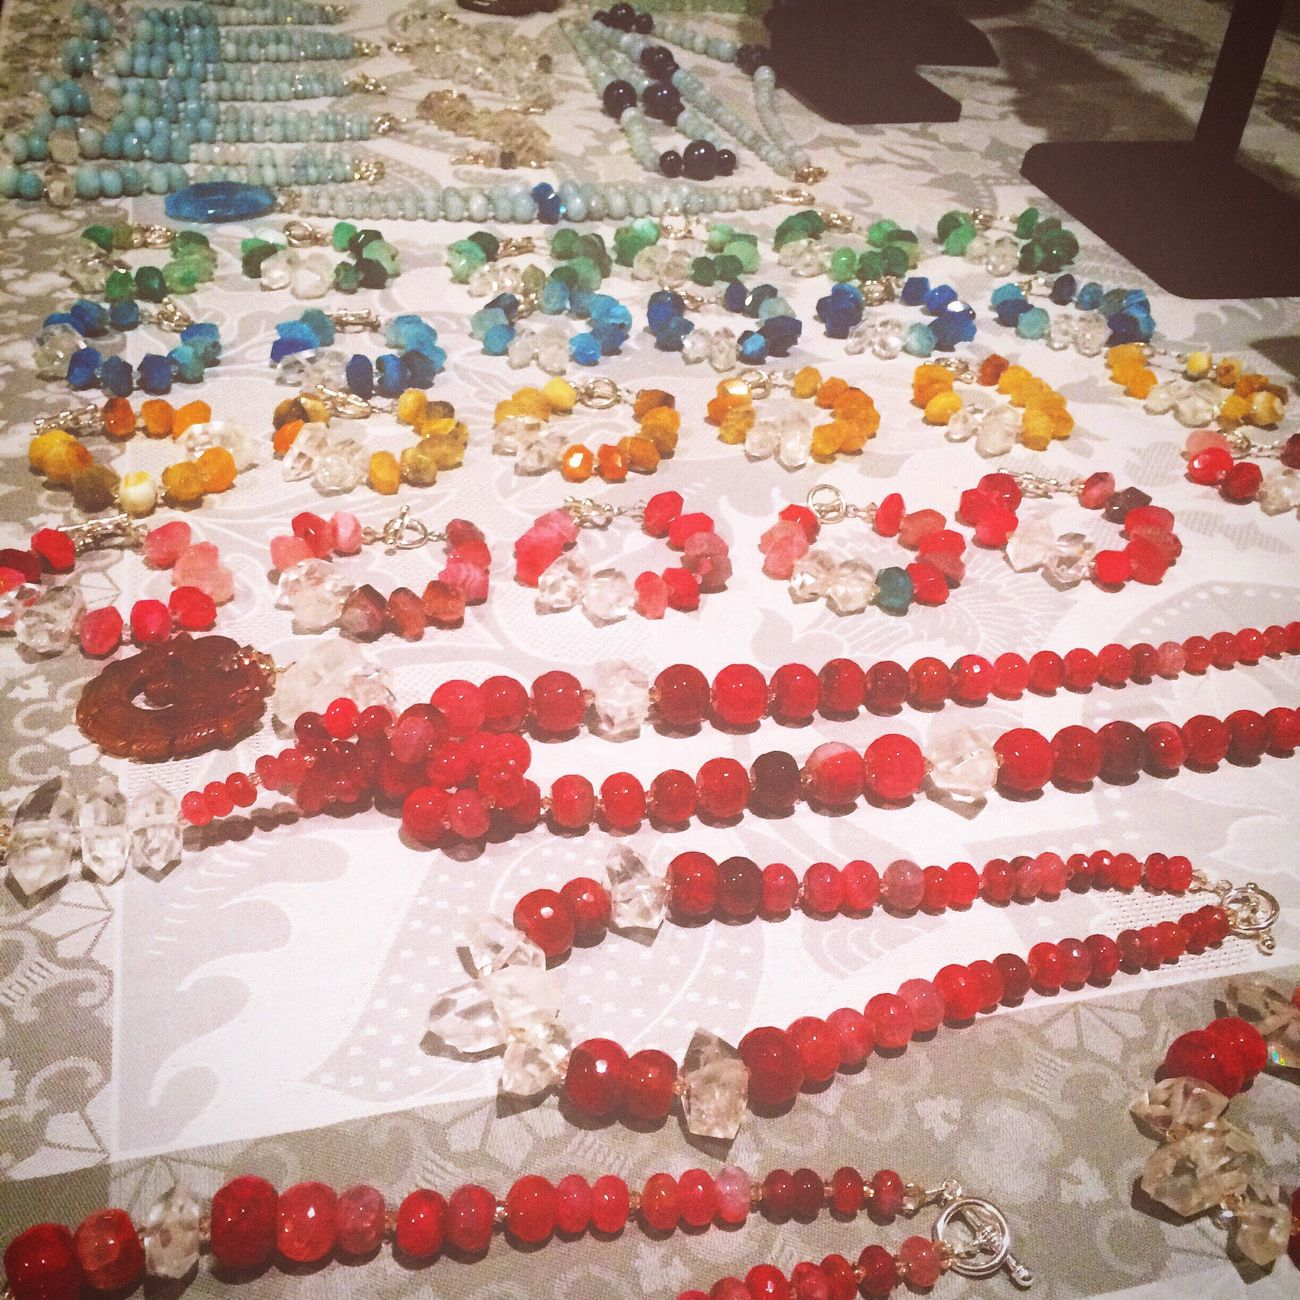 Jewelry Multi Colored Palette Large Group Of Objects Gems Gemstones Rainbow Semipreciousstones Semi Precious Stones Crystals Art And Craft Necklace Bracelet Shop Display Indoors  Variation No People